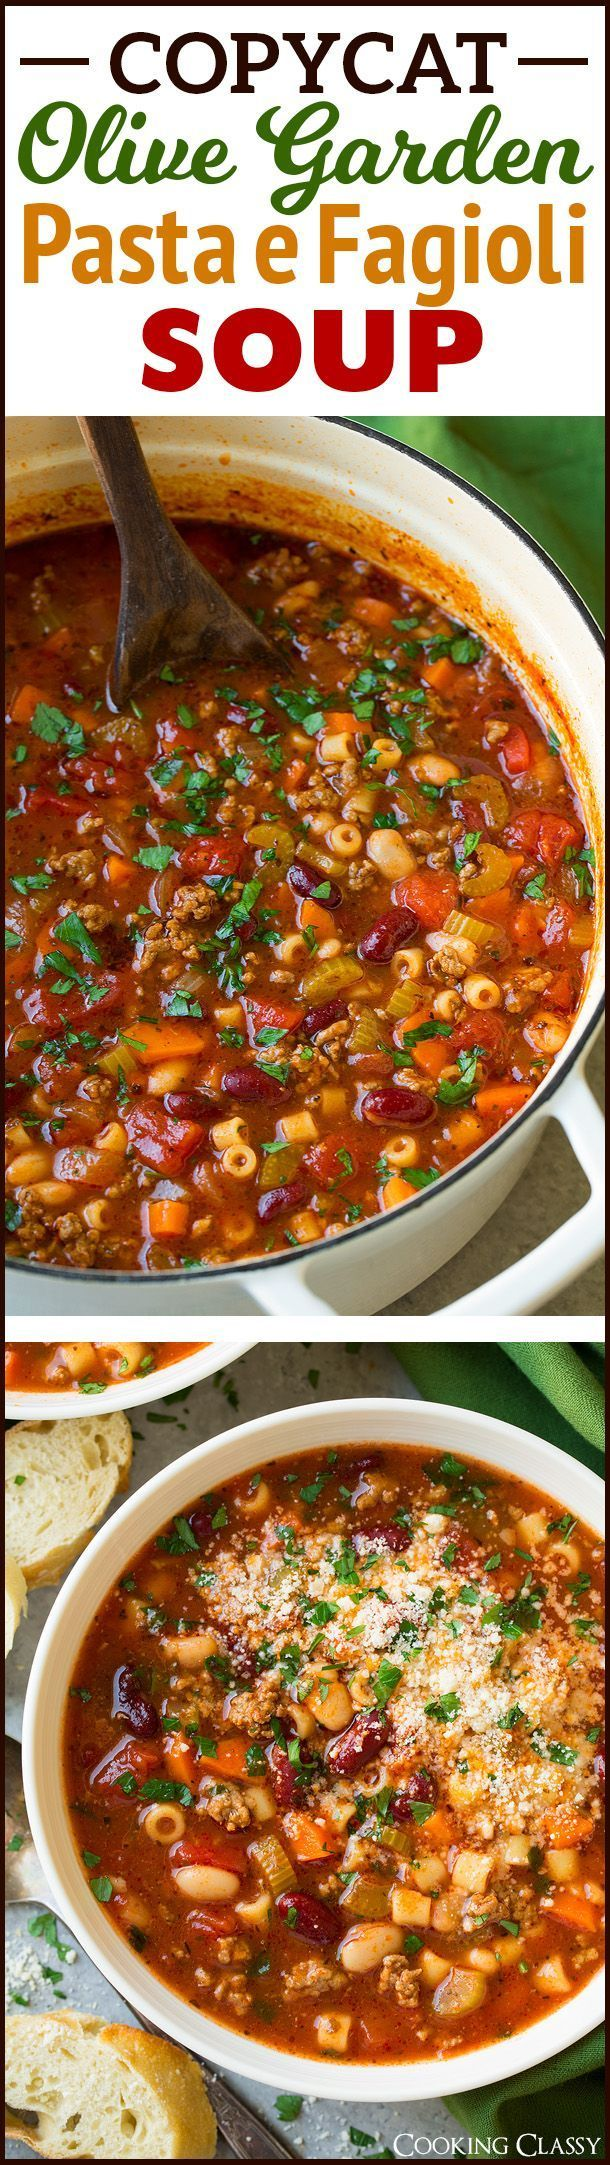 I've already shared this Copycat Olive Garden Pasta e Fagoli recipe before but this is one of my go-to soup recipes that I make regularly, so I just wanted